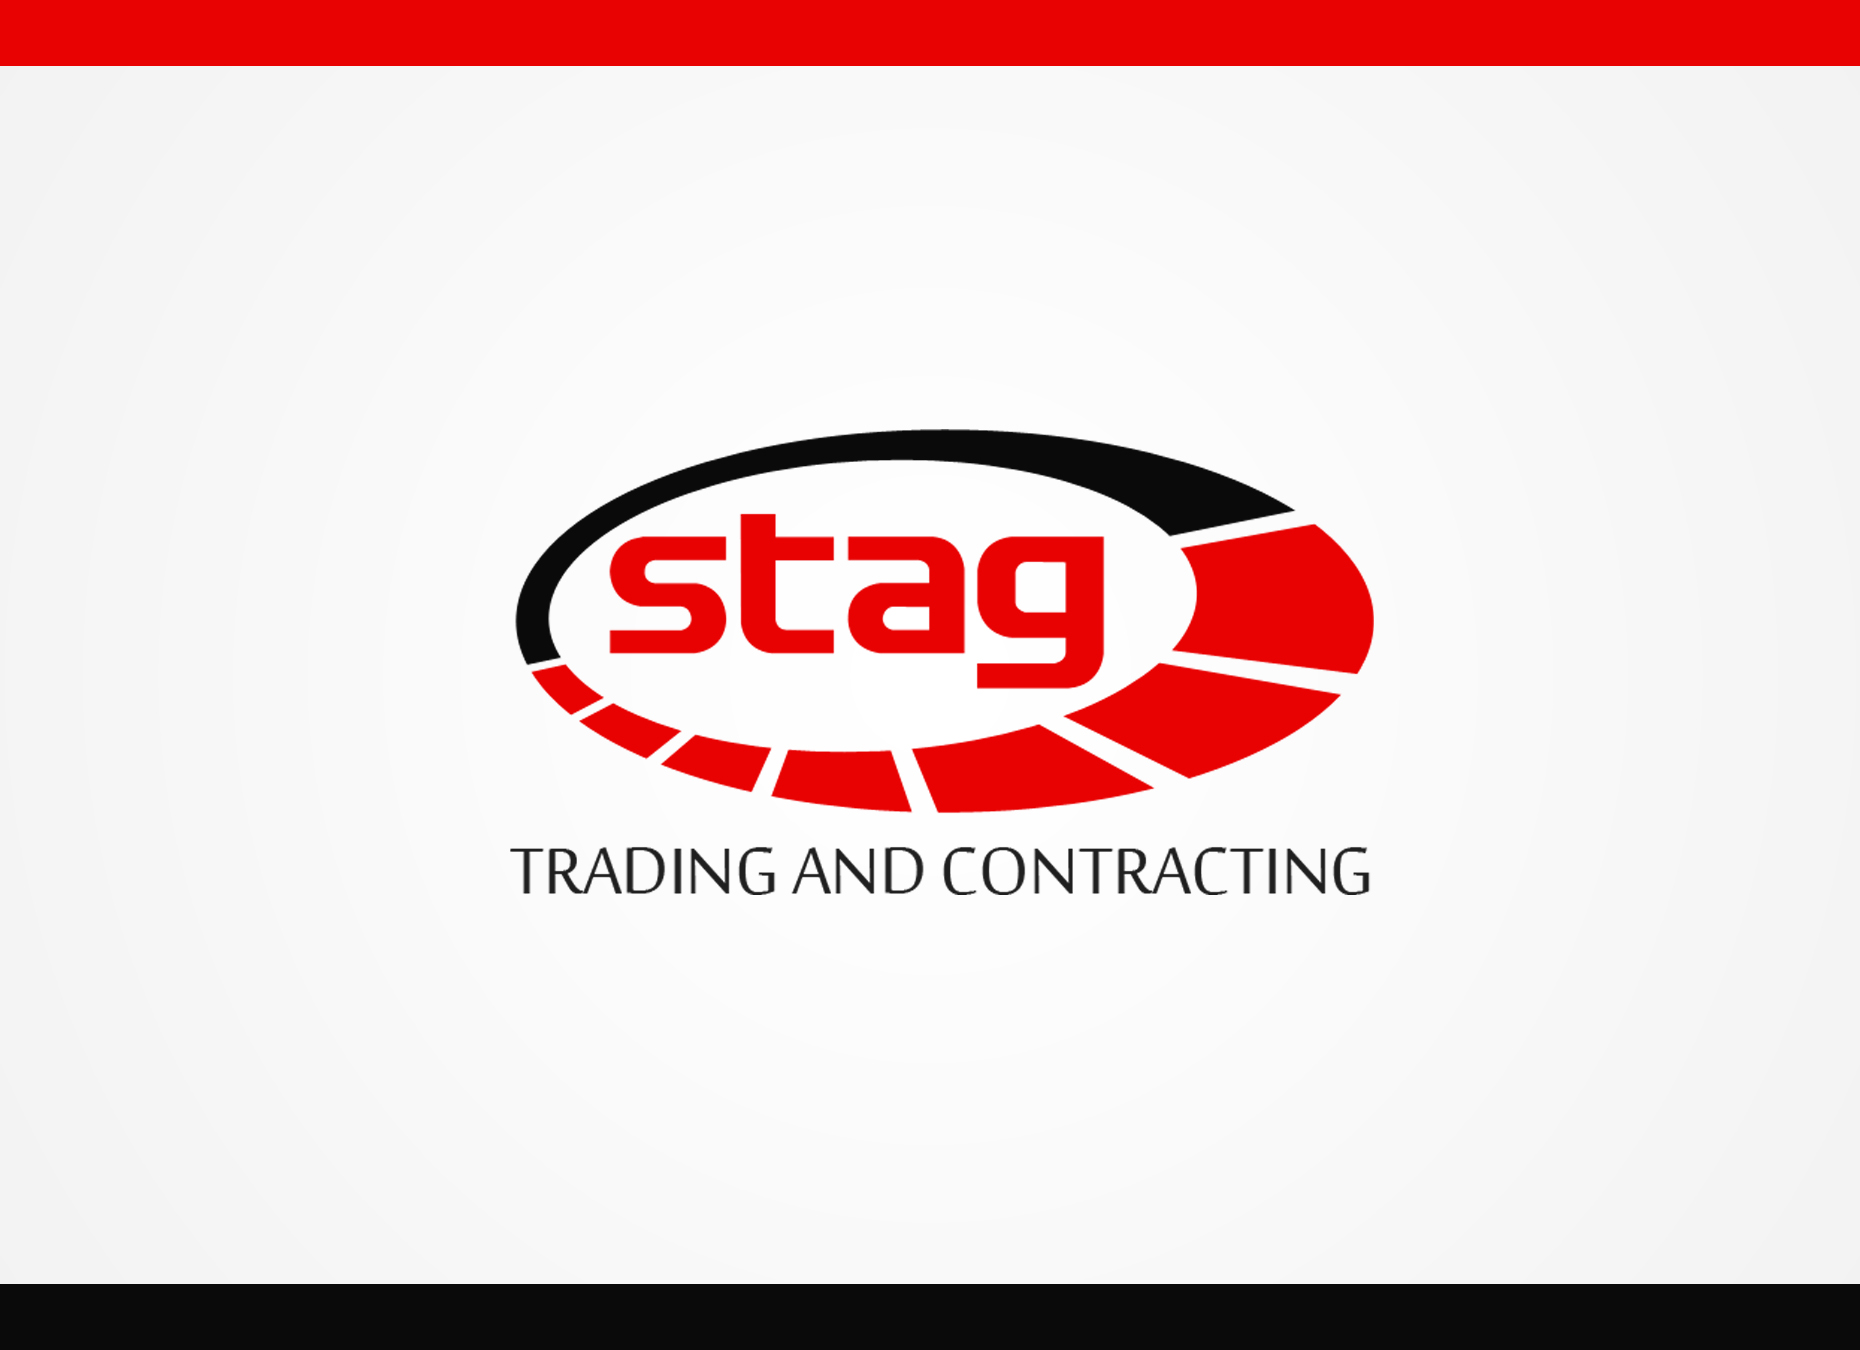 Logo Design by omARTist - Entry No. 10 in the Logo Design Contest Captivating Logo Design for STAG Trading & Contracting.